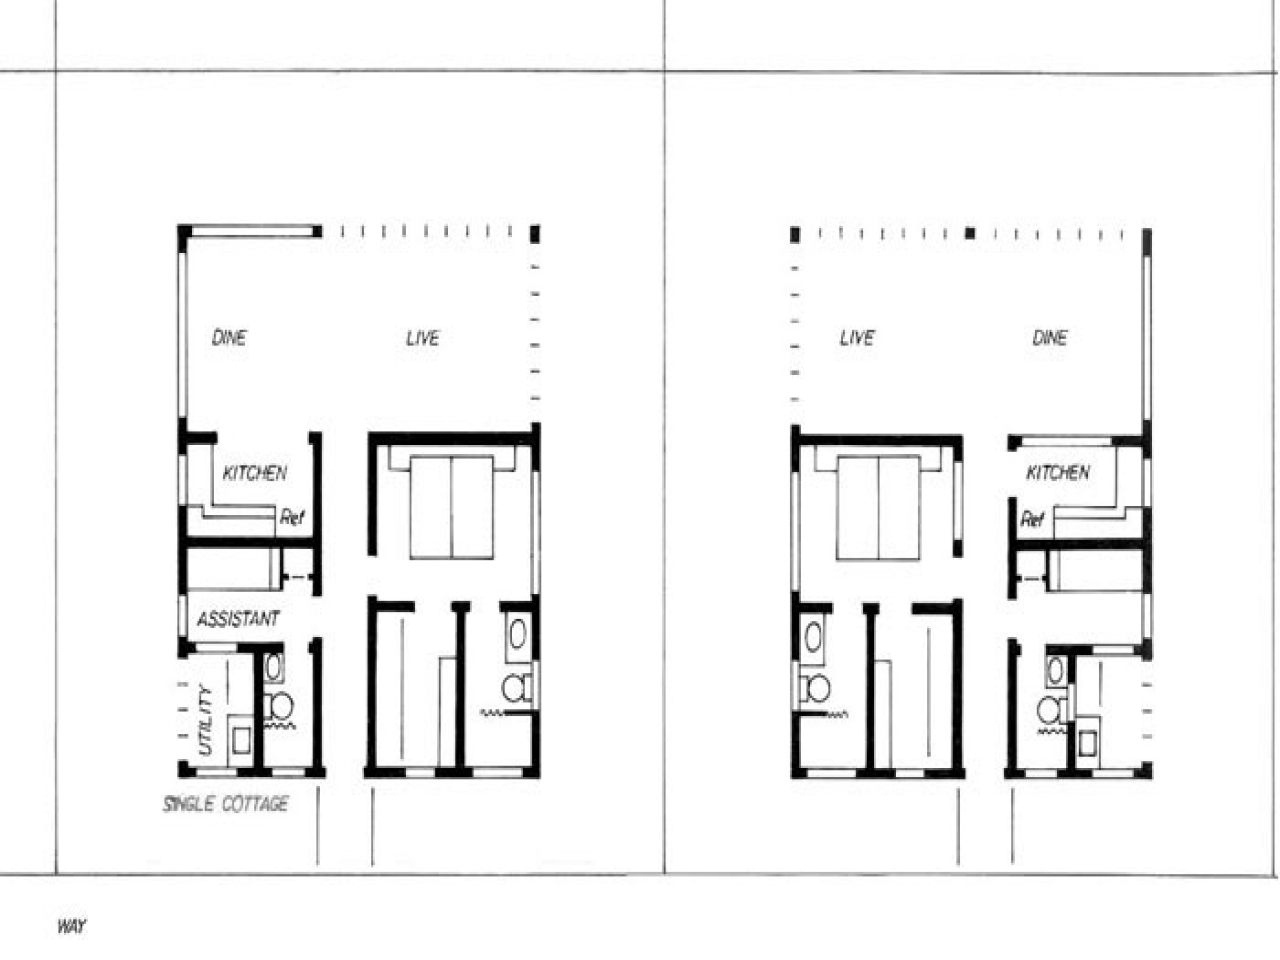 Cottage cabin bedroom 1 bedroom cottage house plans one for 1 bedroom cottage floor plans